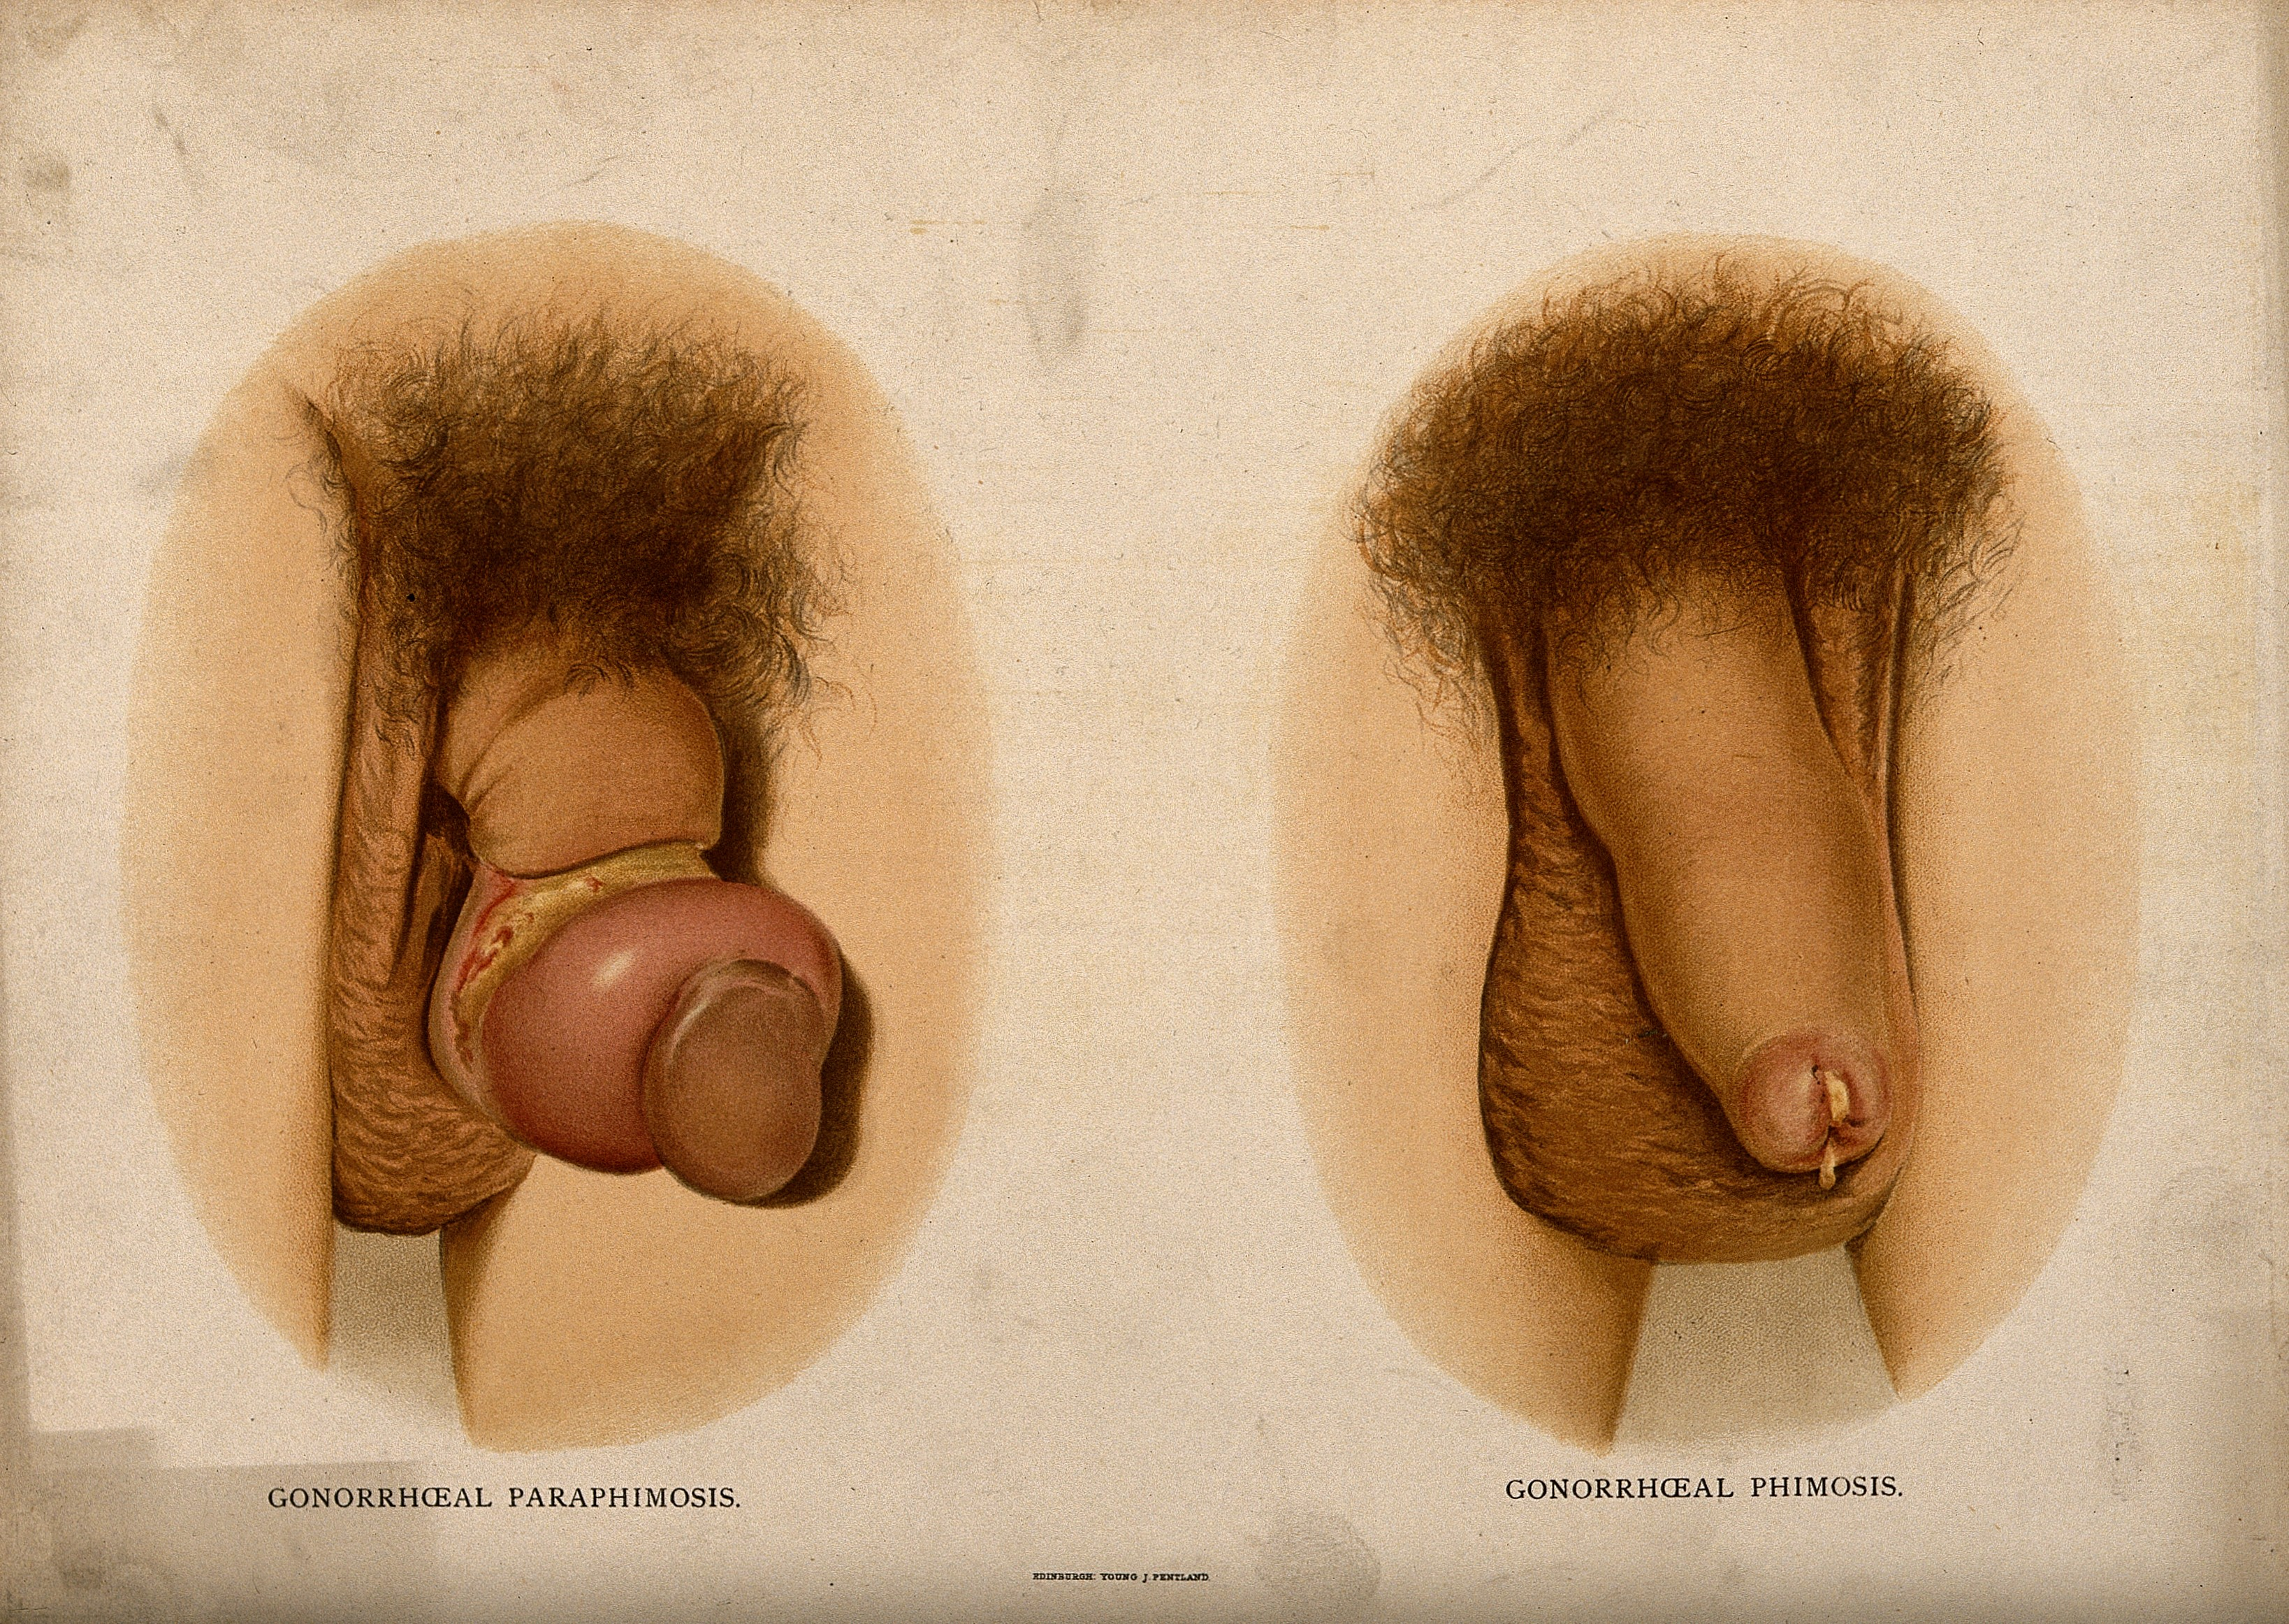 NSFW - Man born with two penises erect picture Mamamia